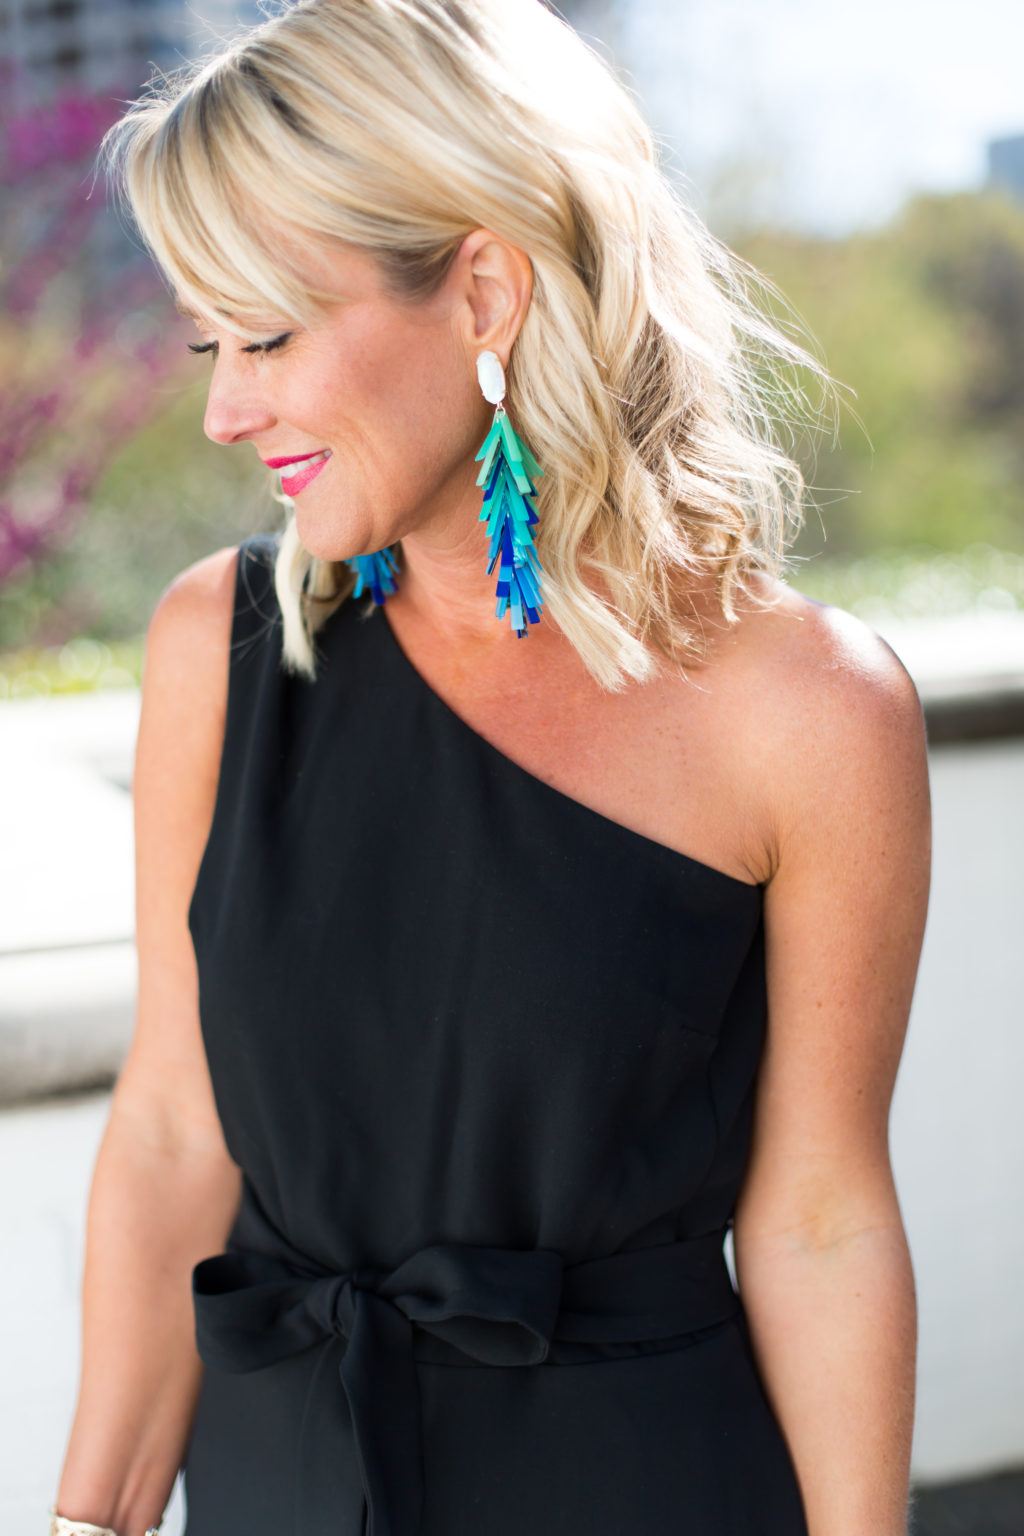 kendra scott tassel earrings nordstrom anniversary sale